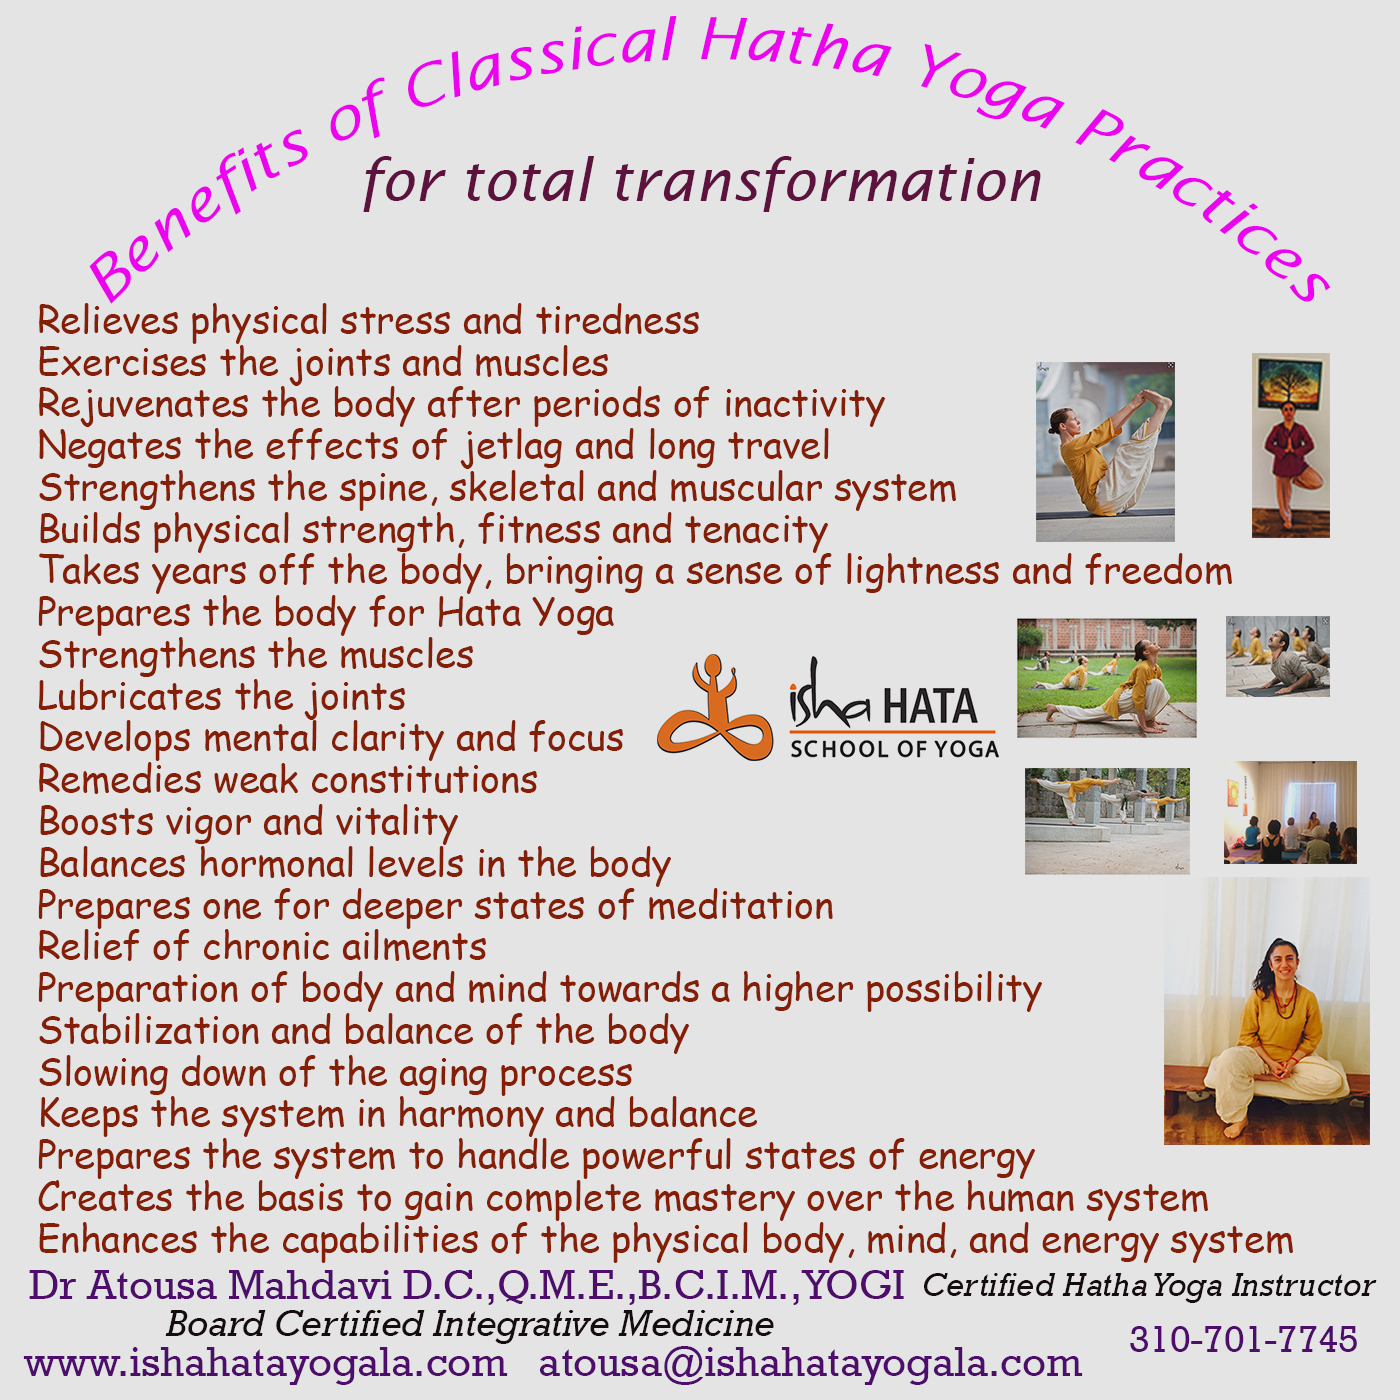 Benefits of Classical Hatha Yoga Practices